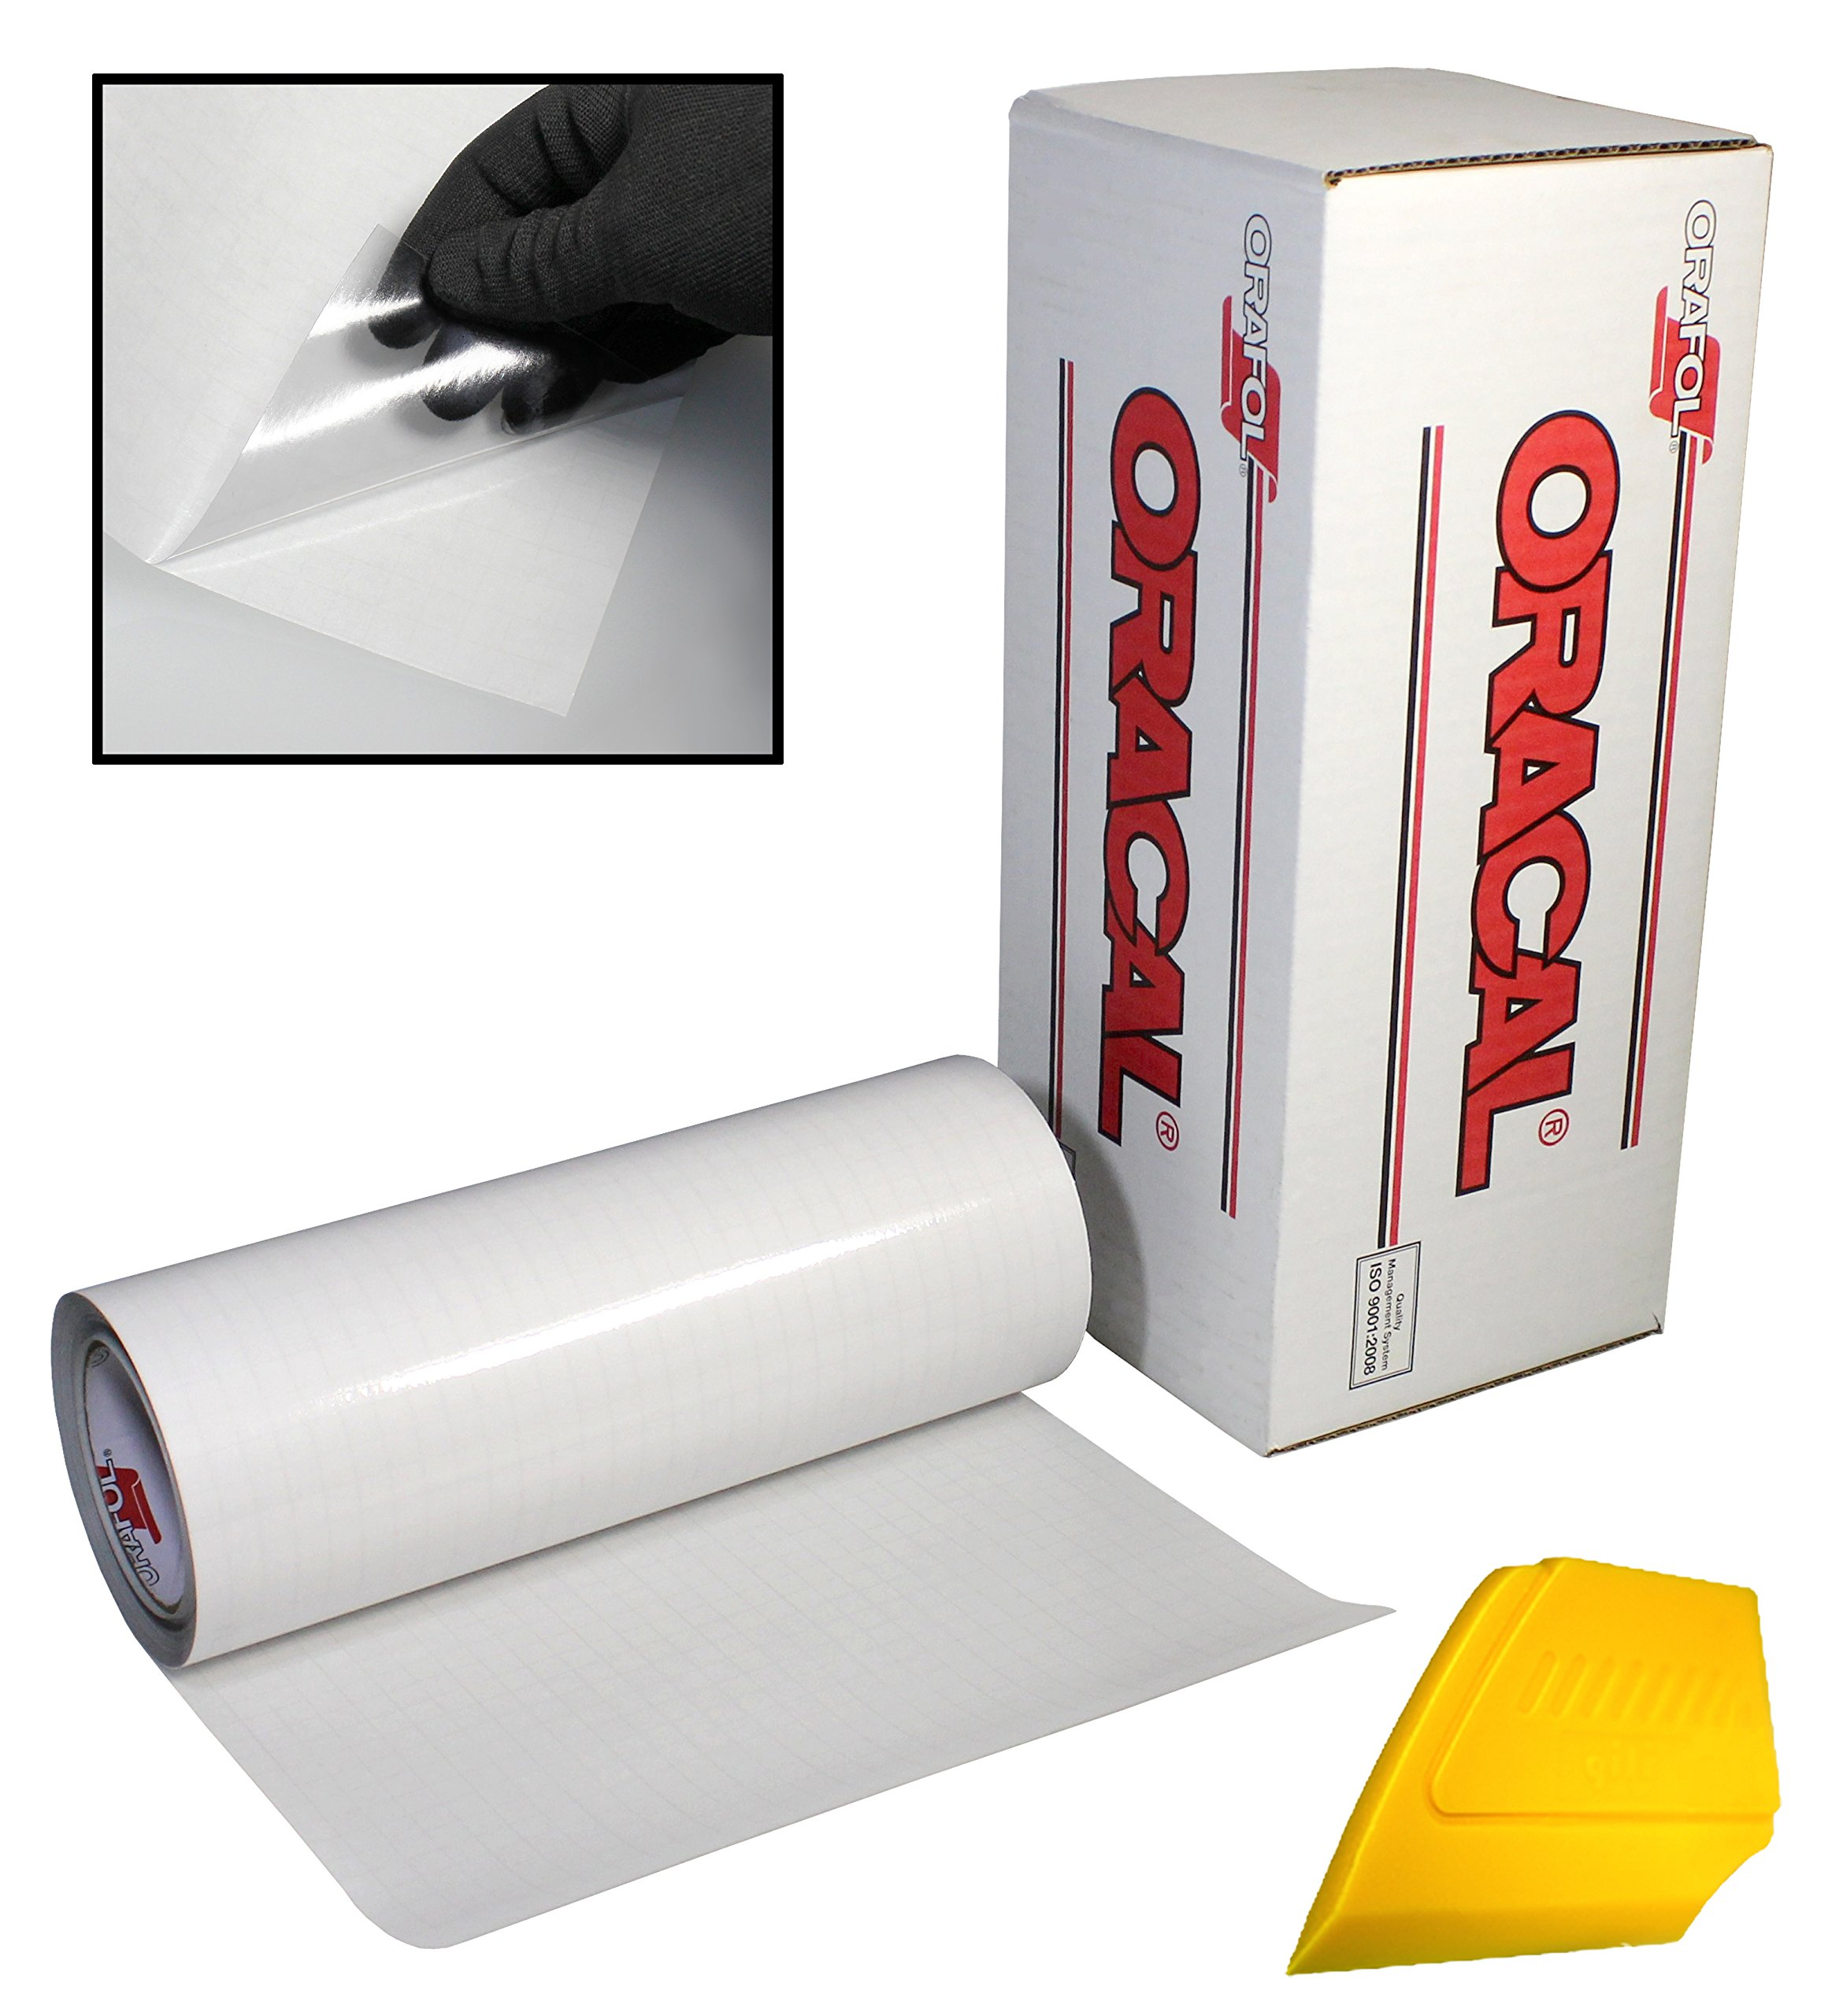 ORACAL Clear Transfer Paper Tape Roll w/Hard Yellow Detailer Squeegee (12'' x 150ft) by ORACAL